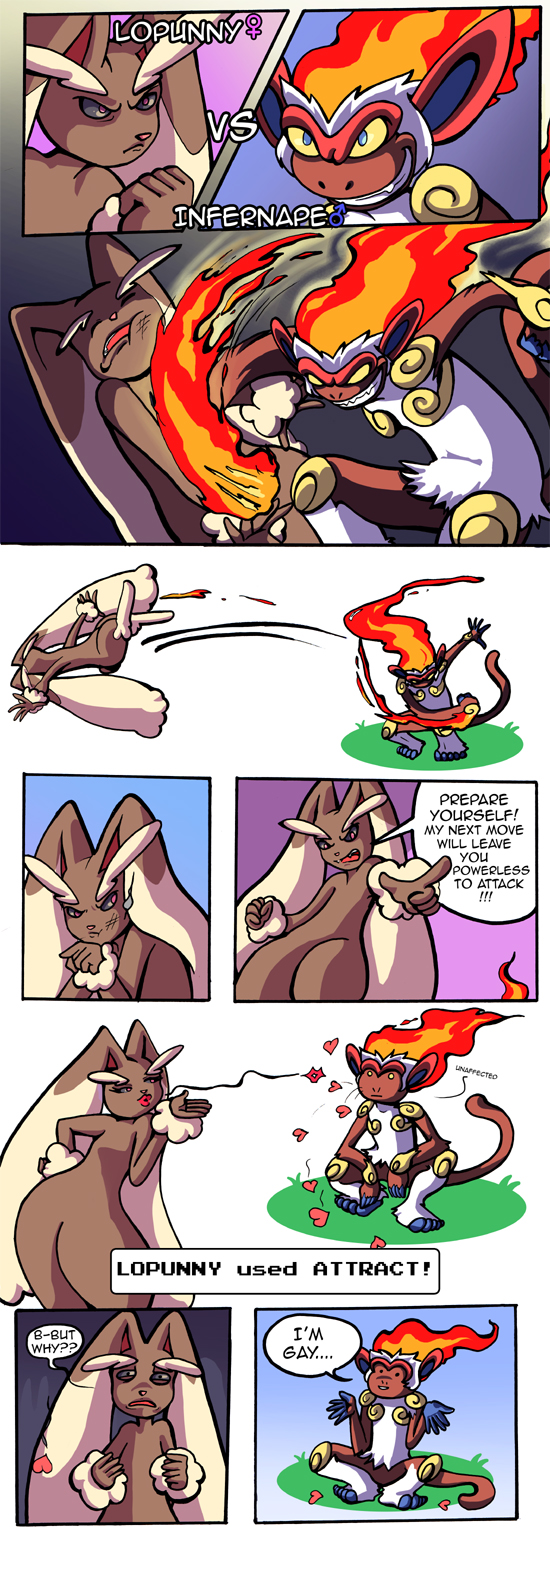 Lopunny vs. Infernape